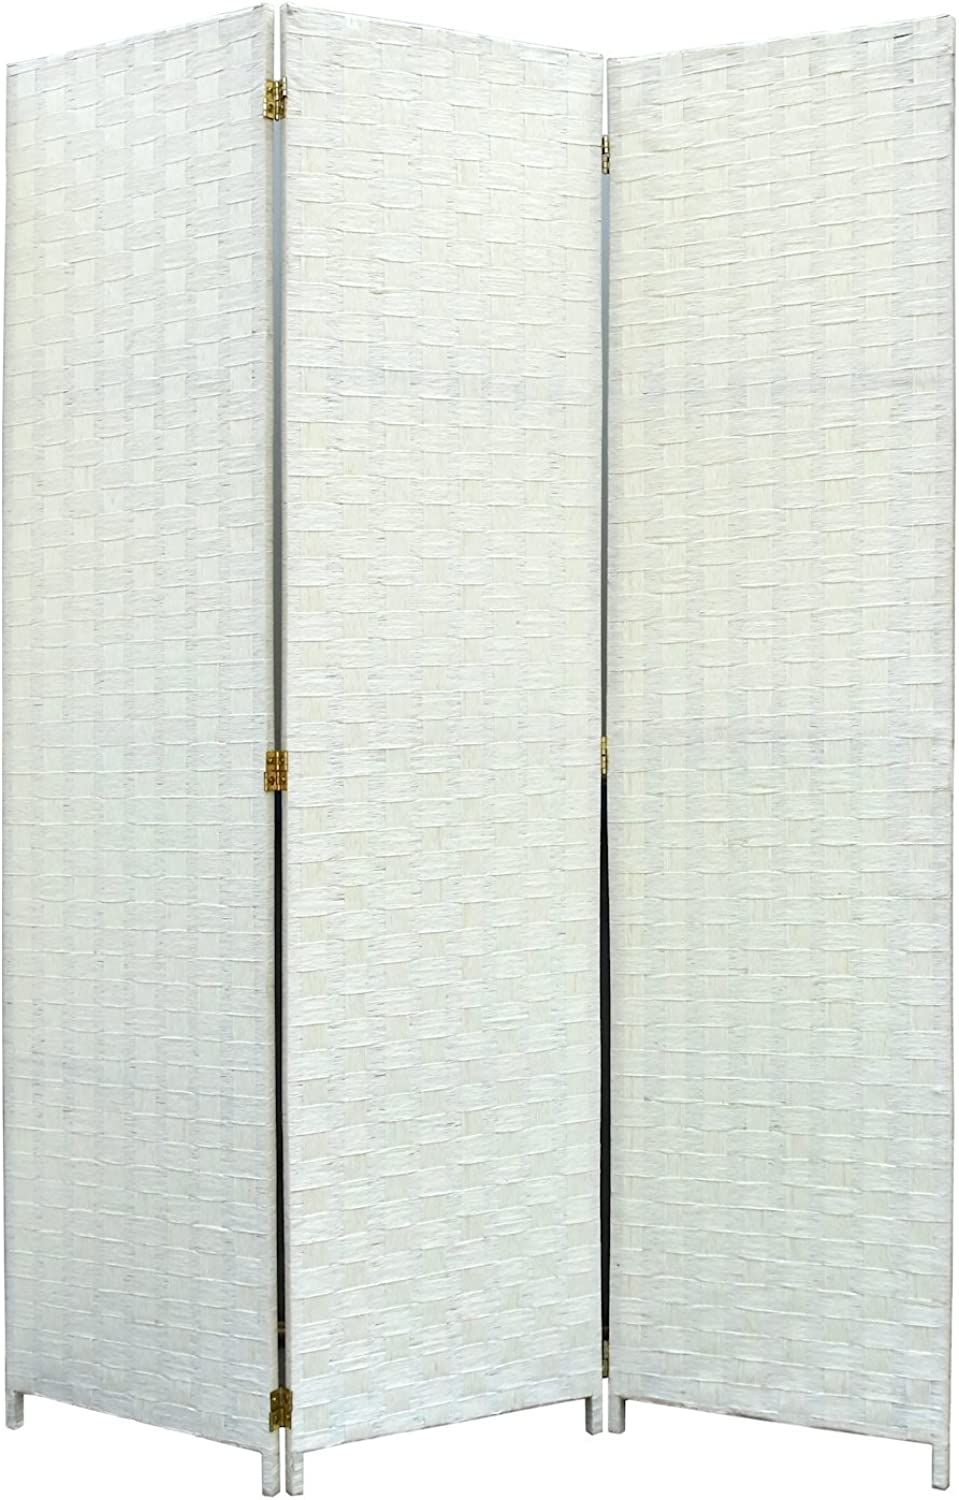 Legacy Decor Room Divider 3 Panel Weave Design Fiber Ivory color